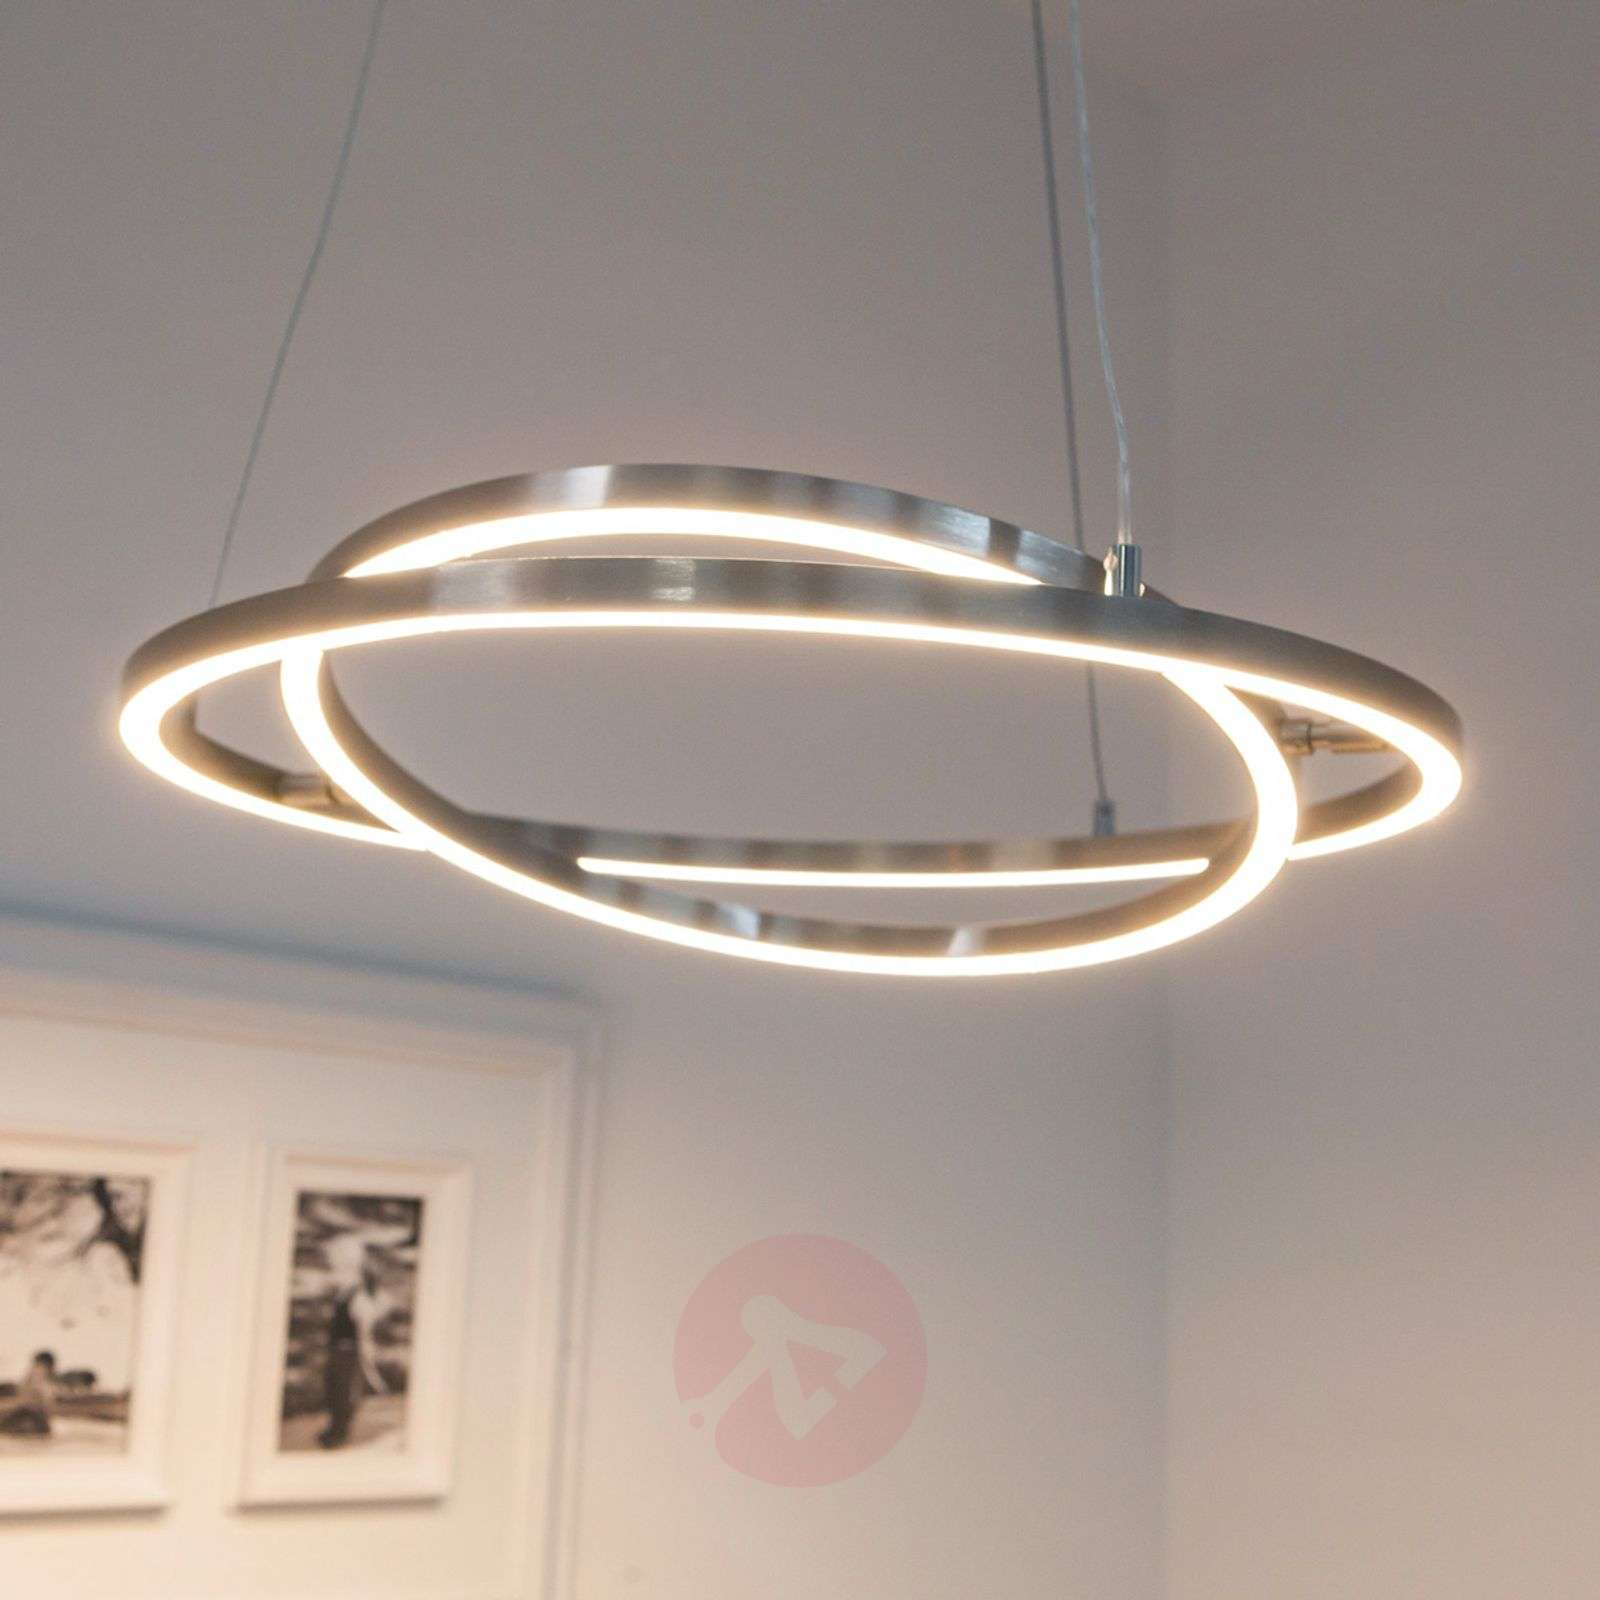 lovisa led hanging light with two led rings. Black Bedroom Furniture Sets. Home Design Ideas